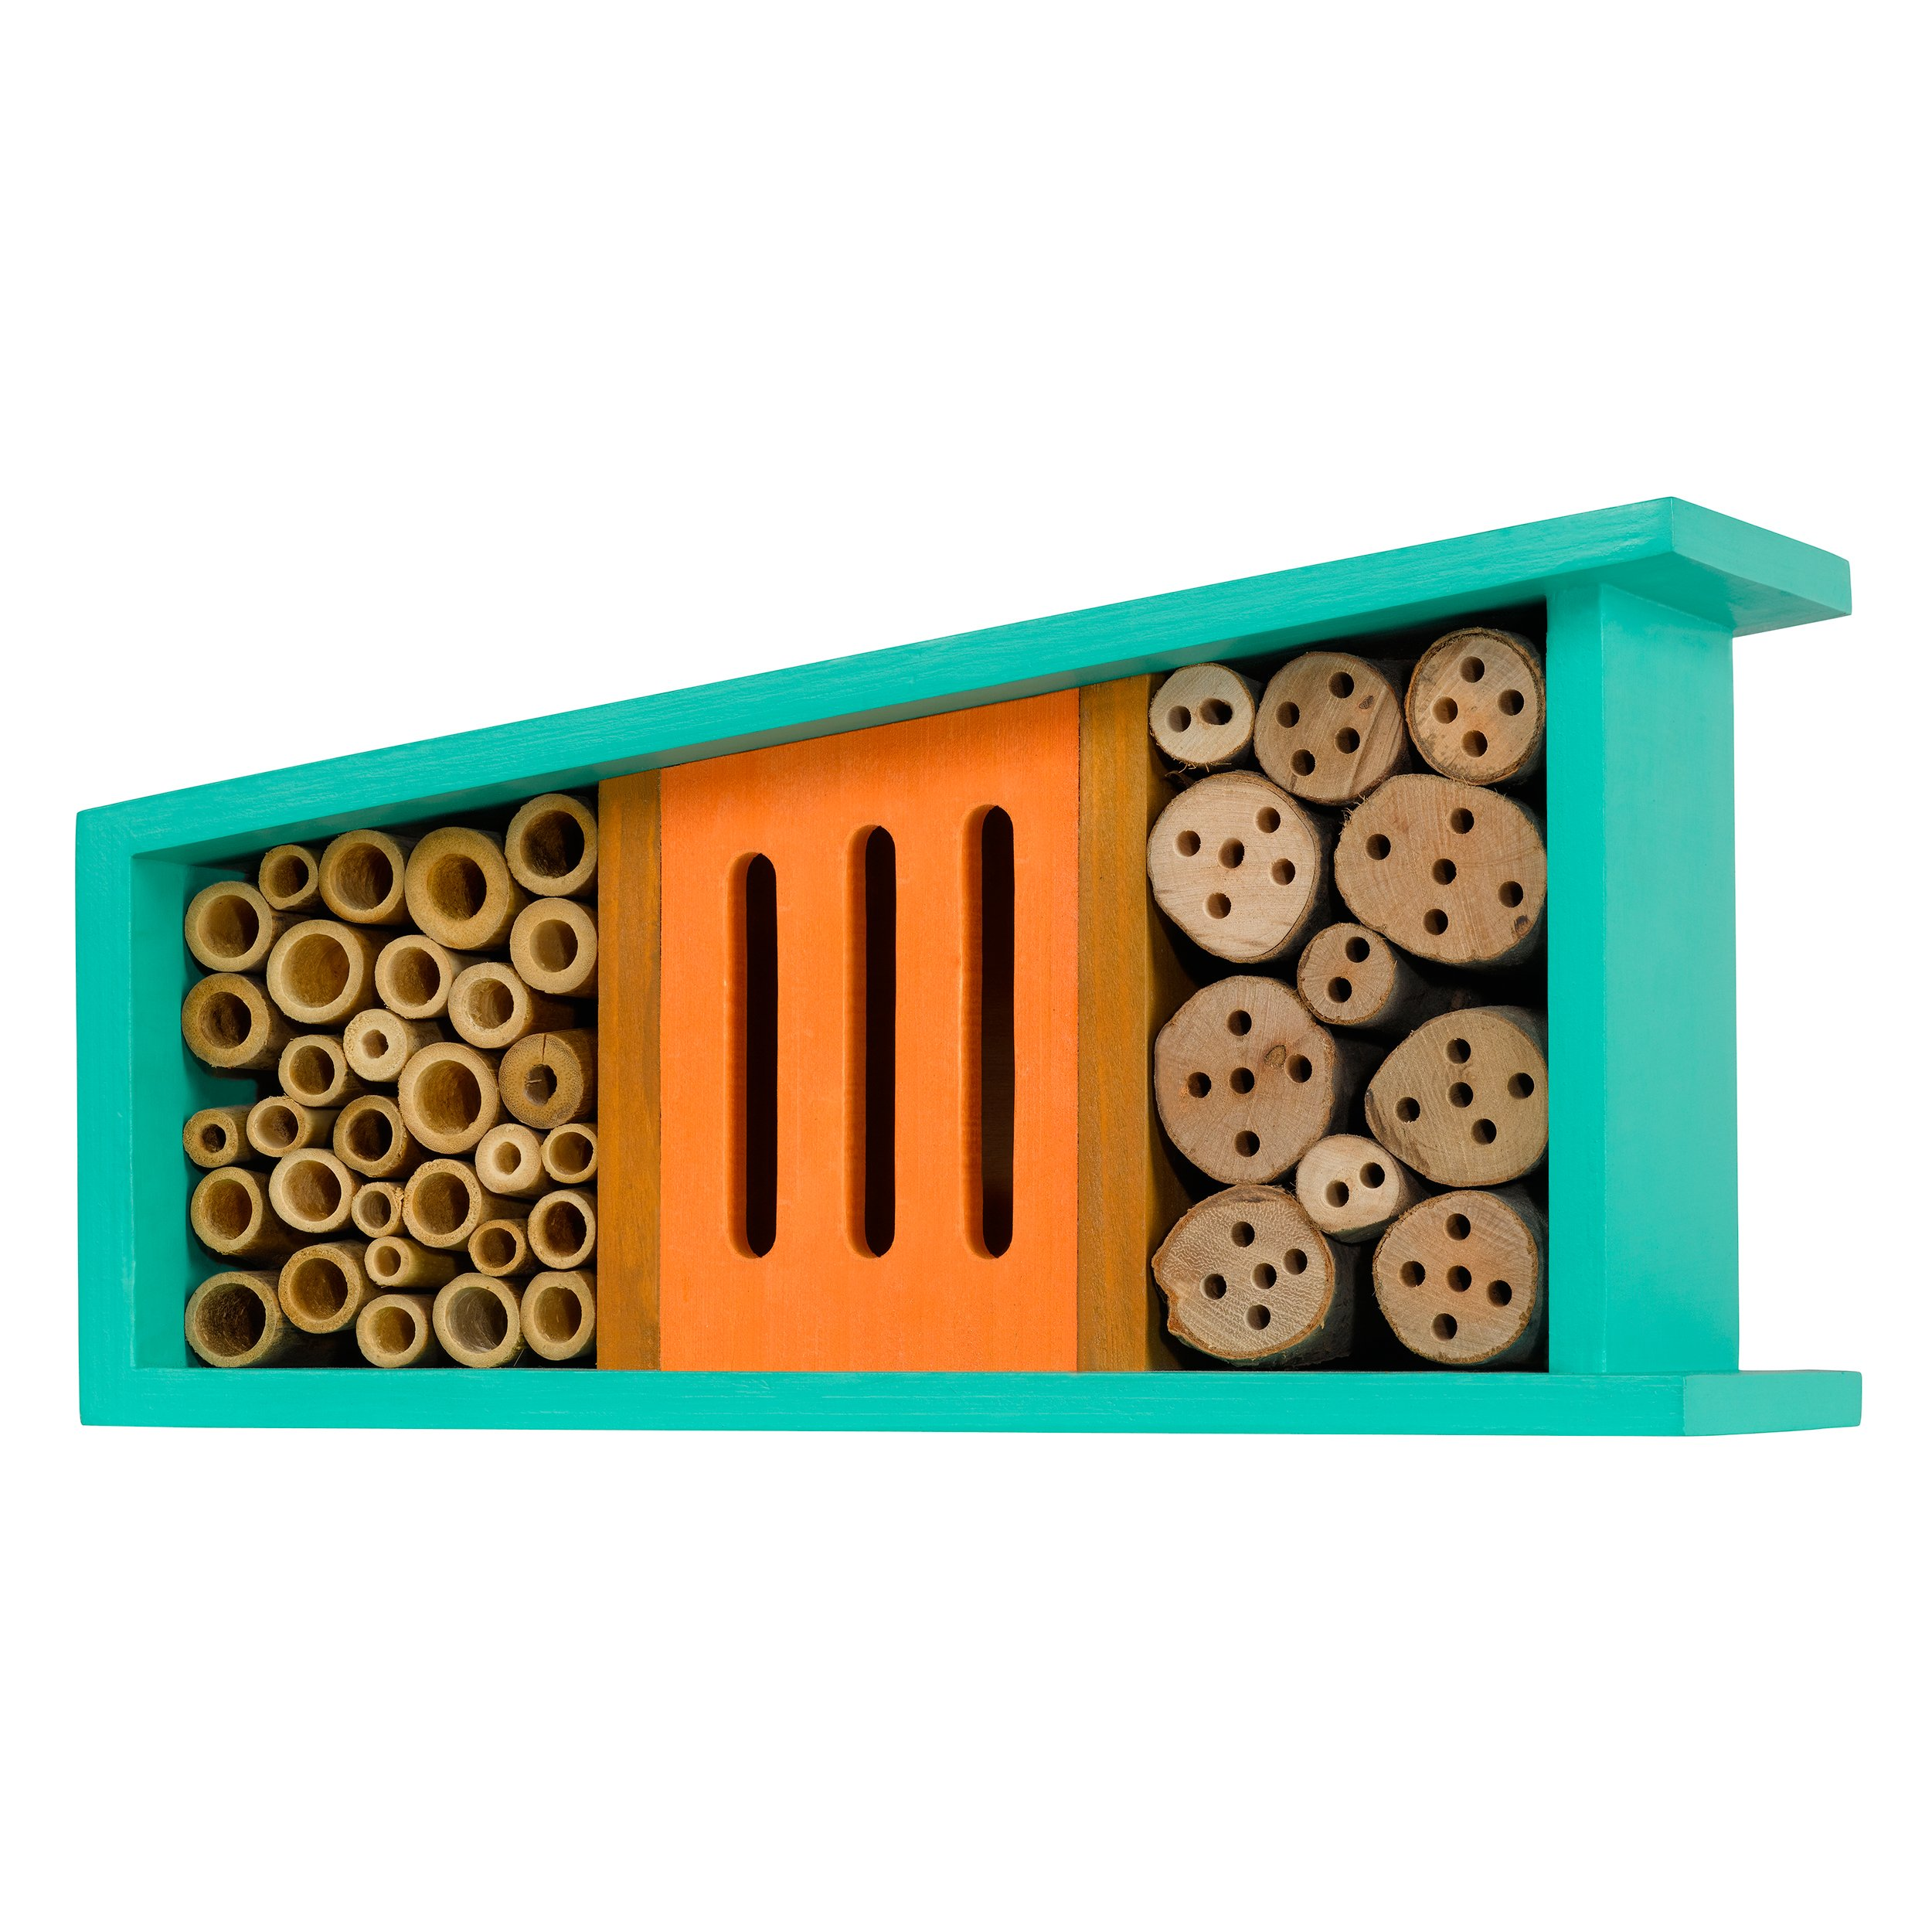 Little Thoughtful Gardener Bug Motel Insect House, Turquoise and Orange, Mid Century Modern Design (13''x 5'')